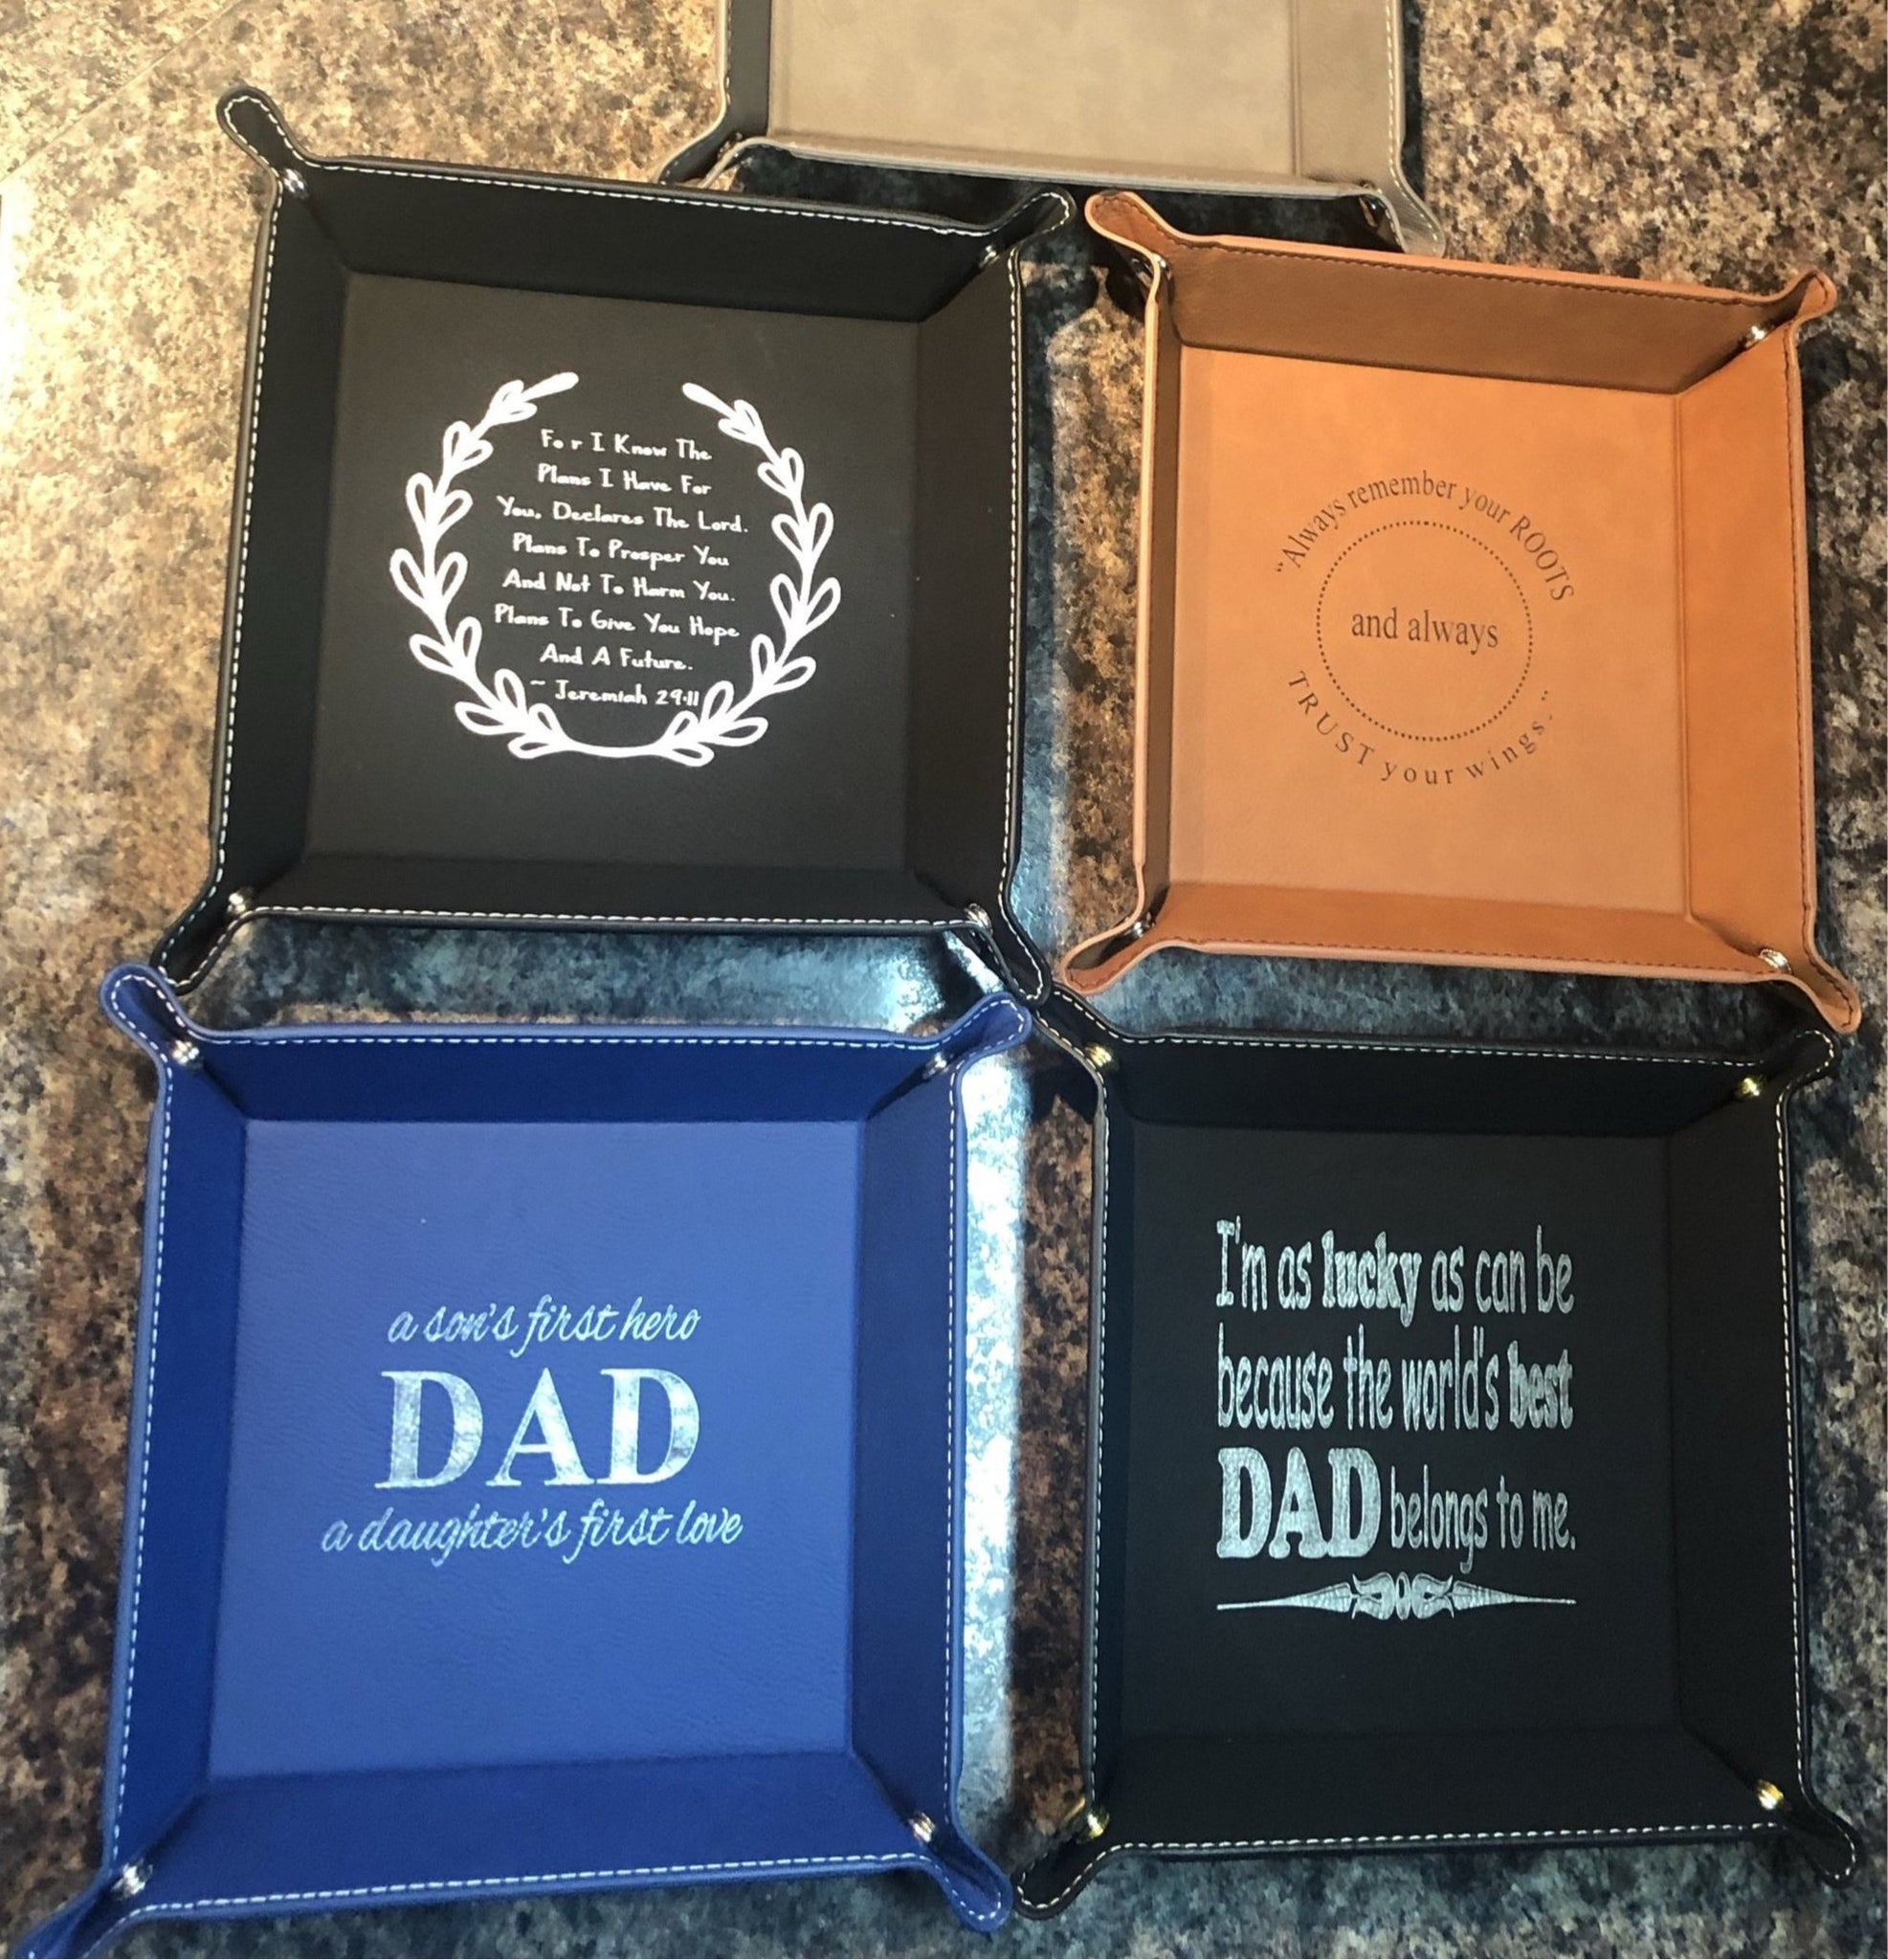 Men's Catchall Engraved Leatherette Tray. Dresser Organizer. - C & A Engraving and Gifts